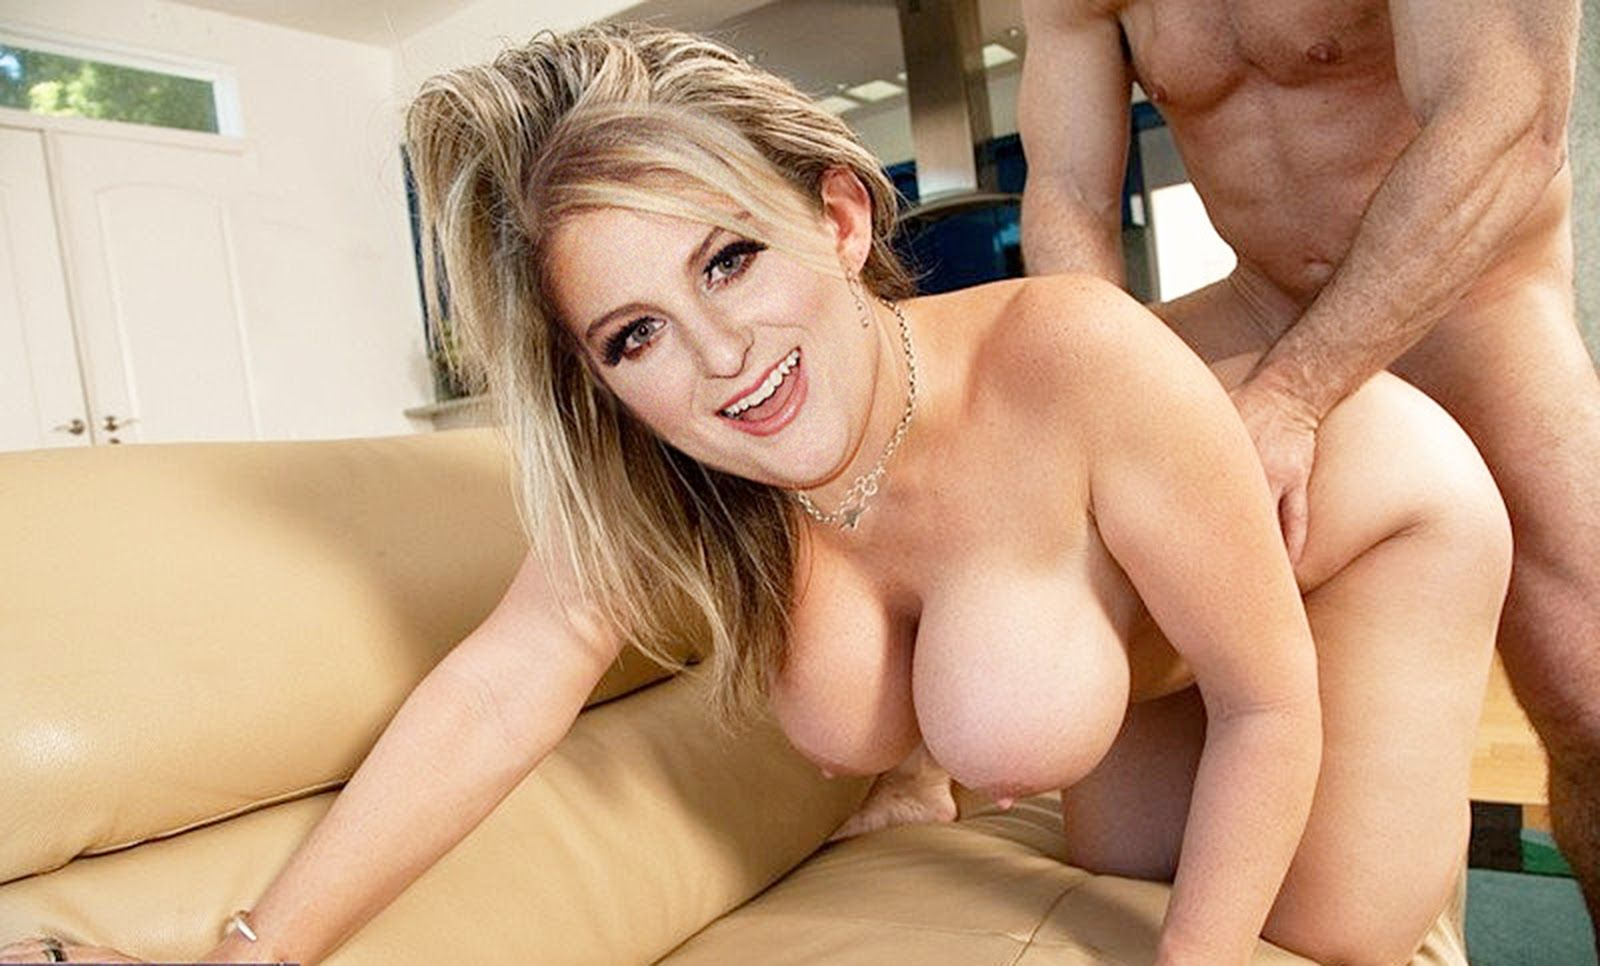 Well Porn meghan trainor naked